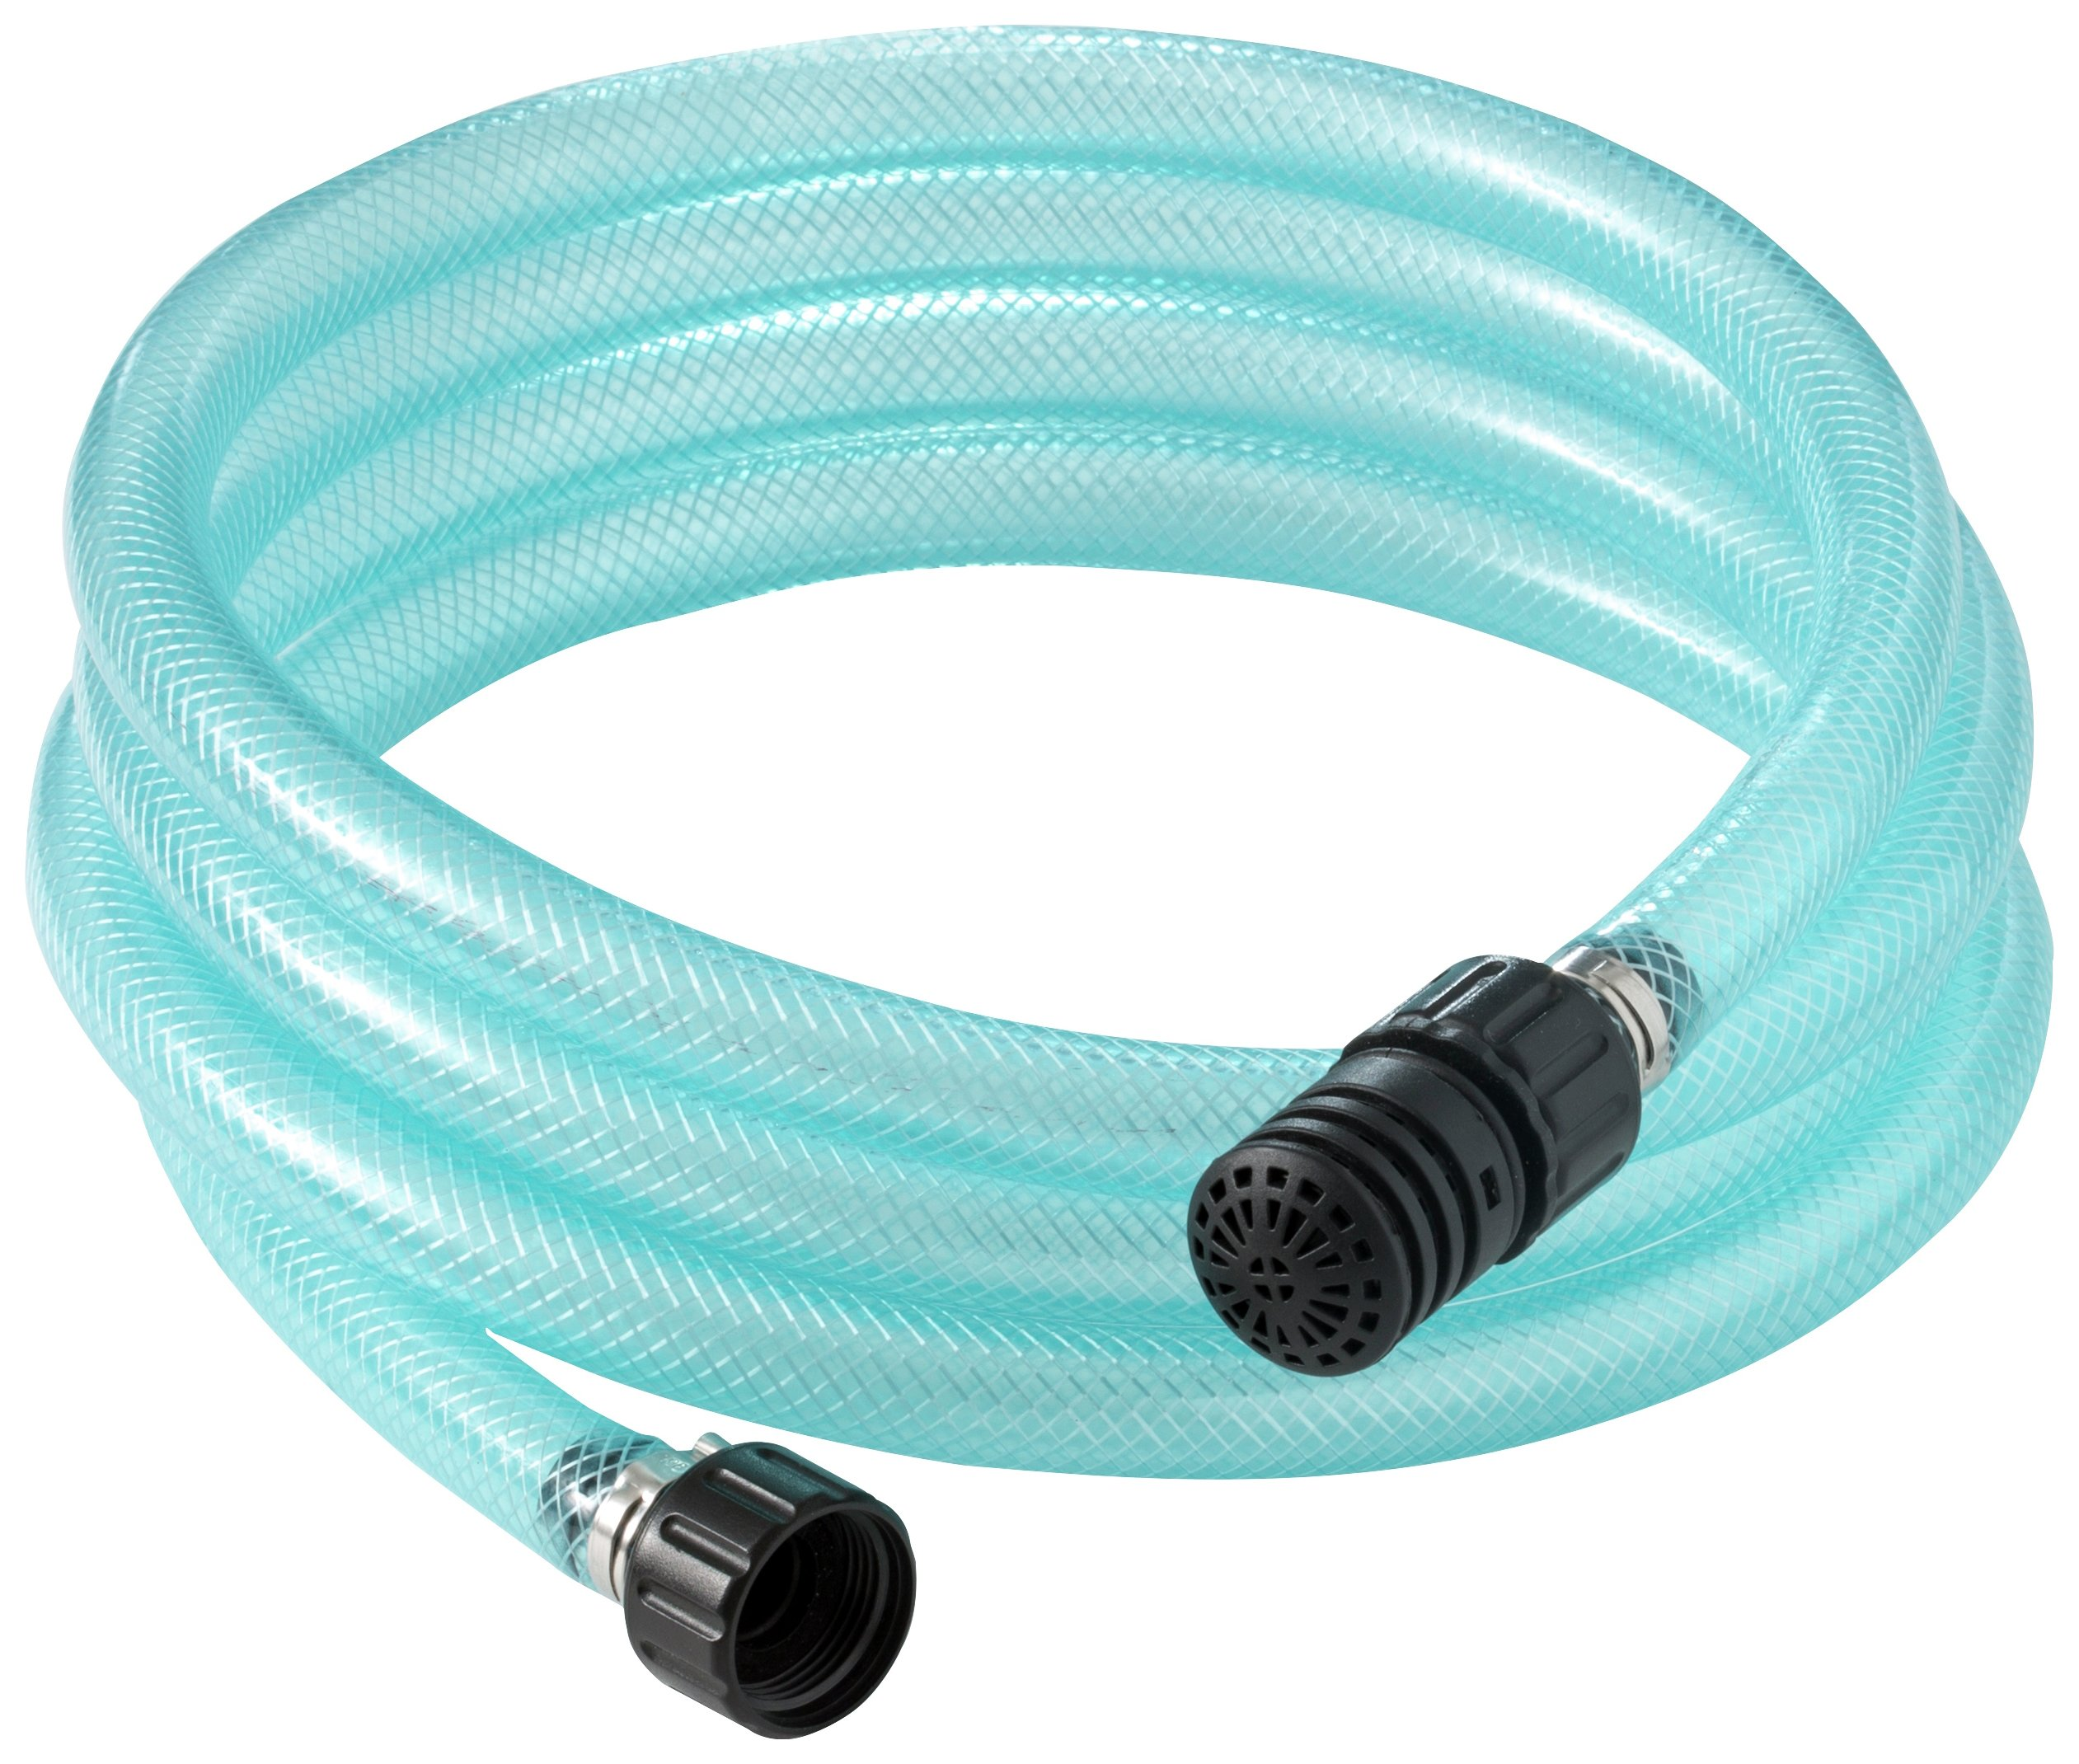 Nilfisk - Inlet Suction Hose for Pressure Washers - 3 Metres lowest price